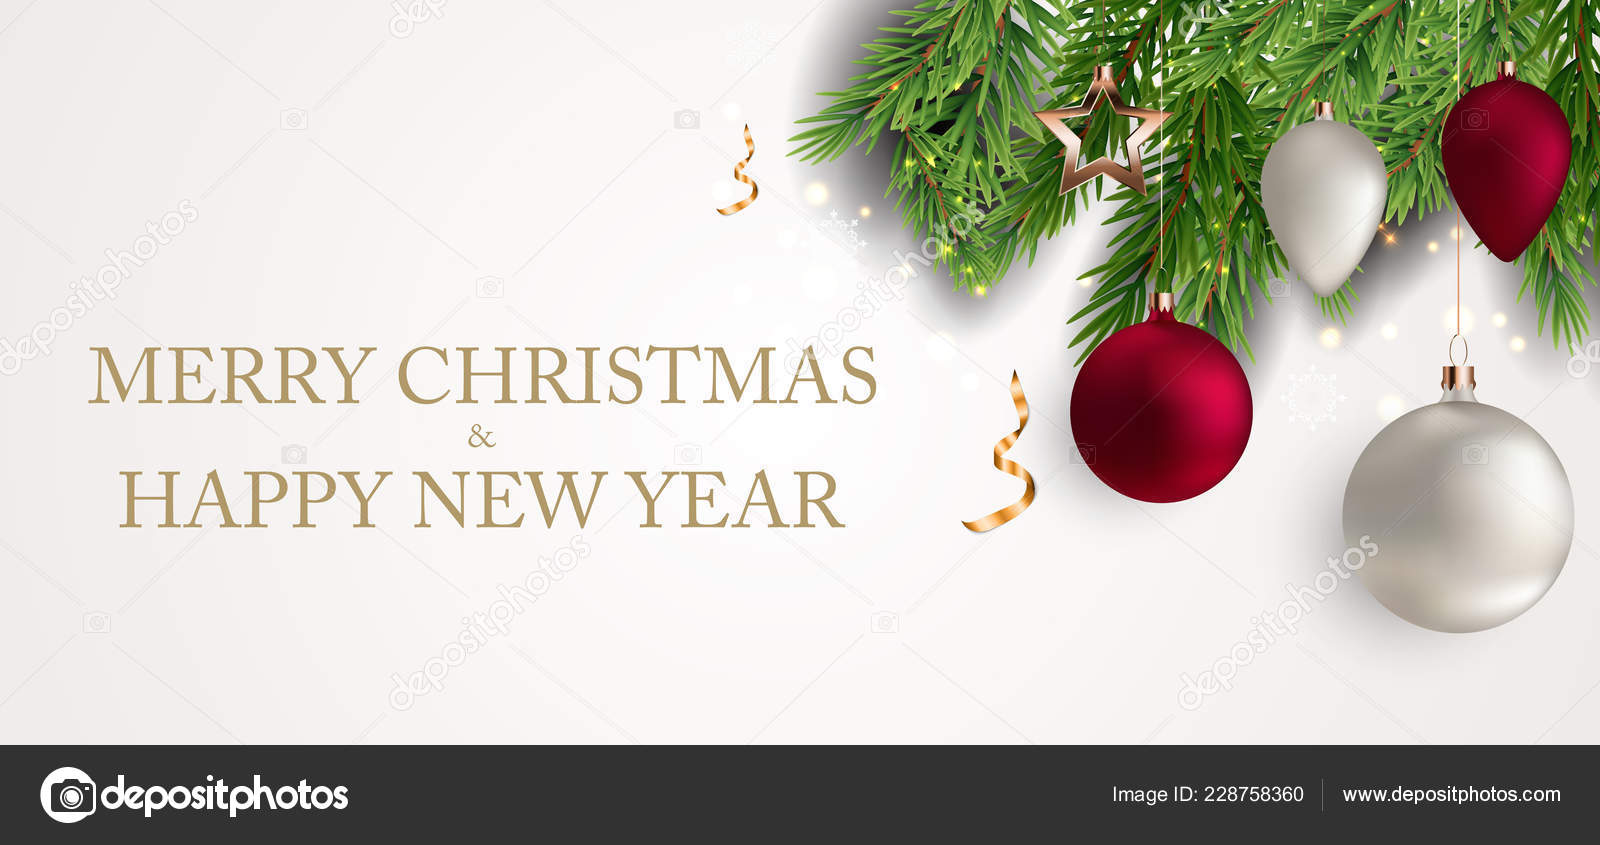 merry christmas new year background vector illustration eps10 stock vector